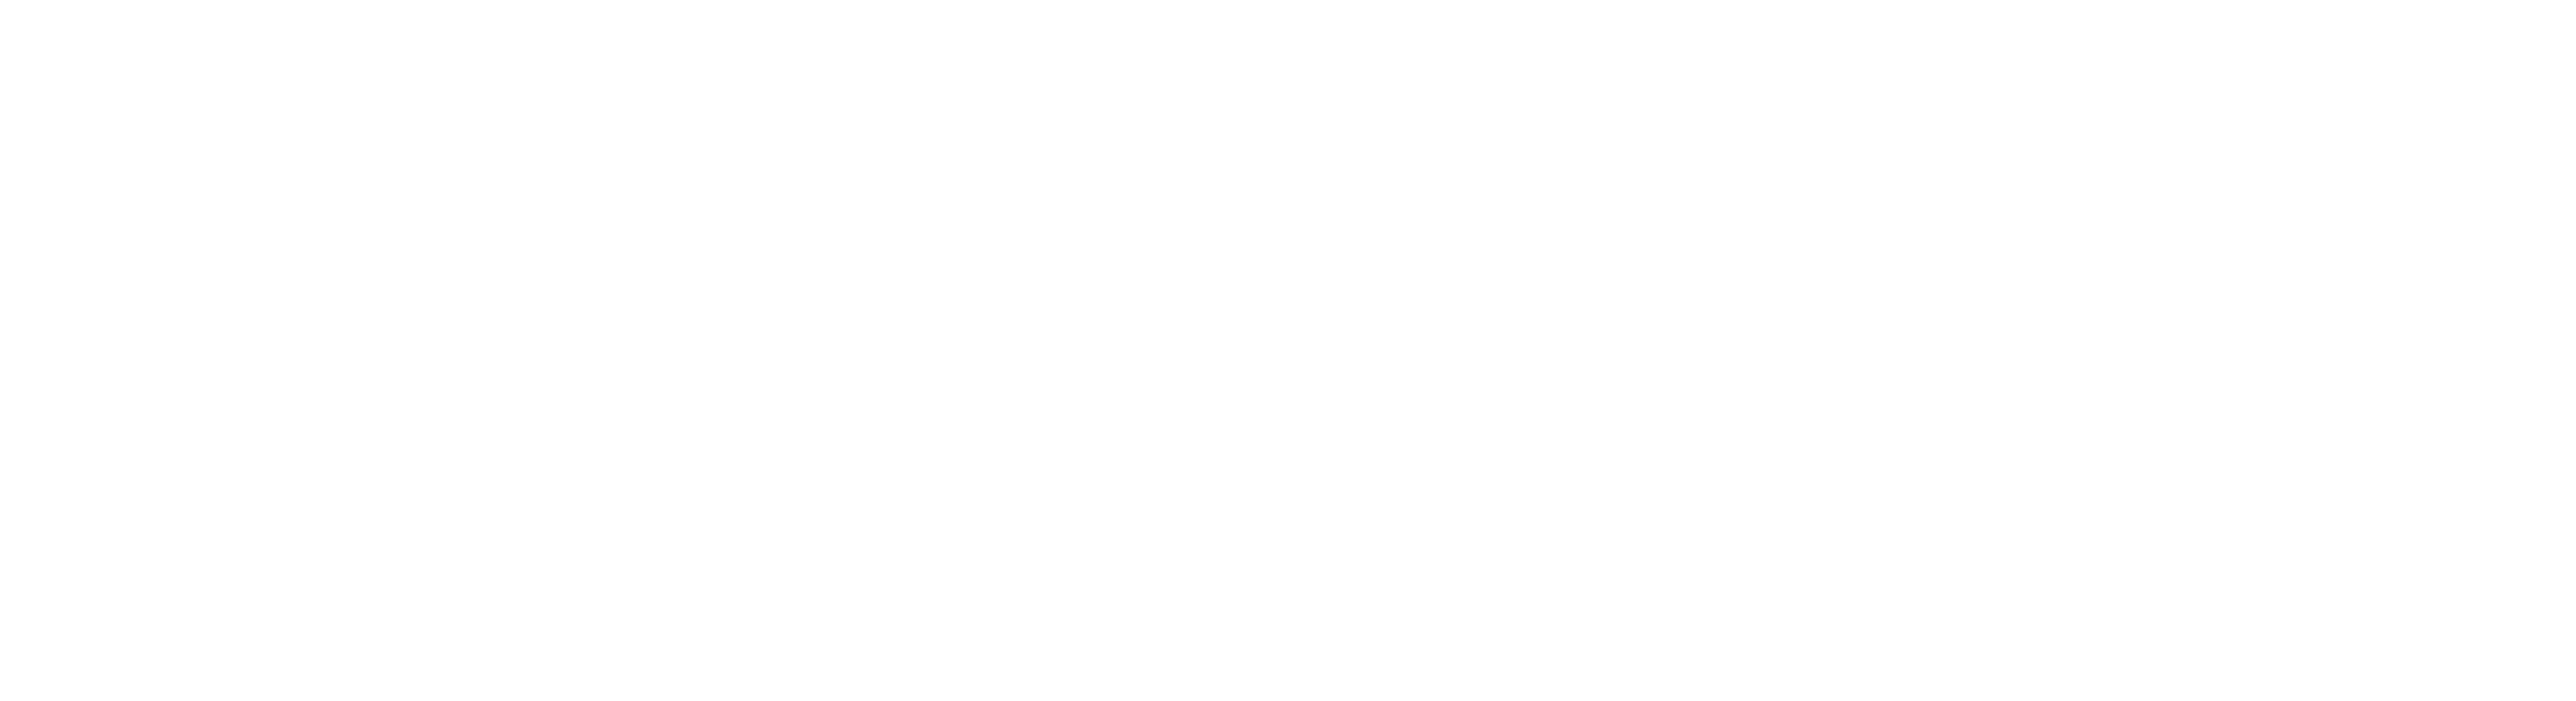 Payments Innovation Alliance logo